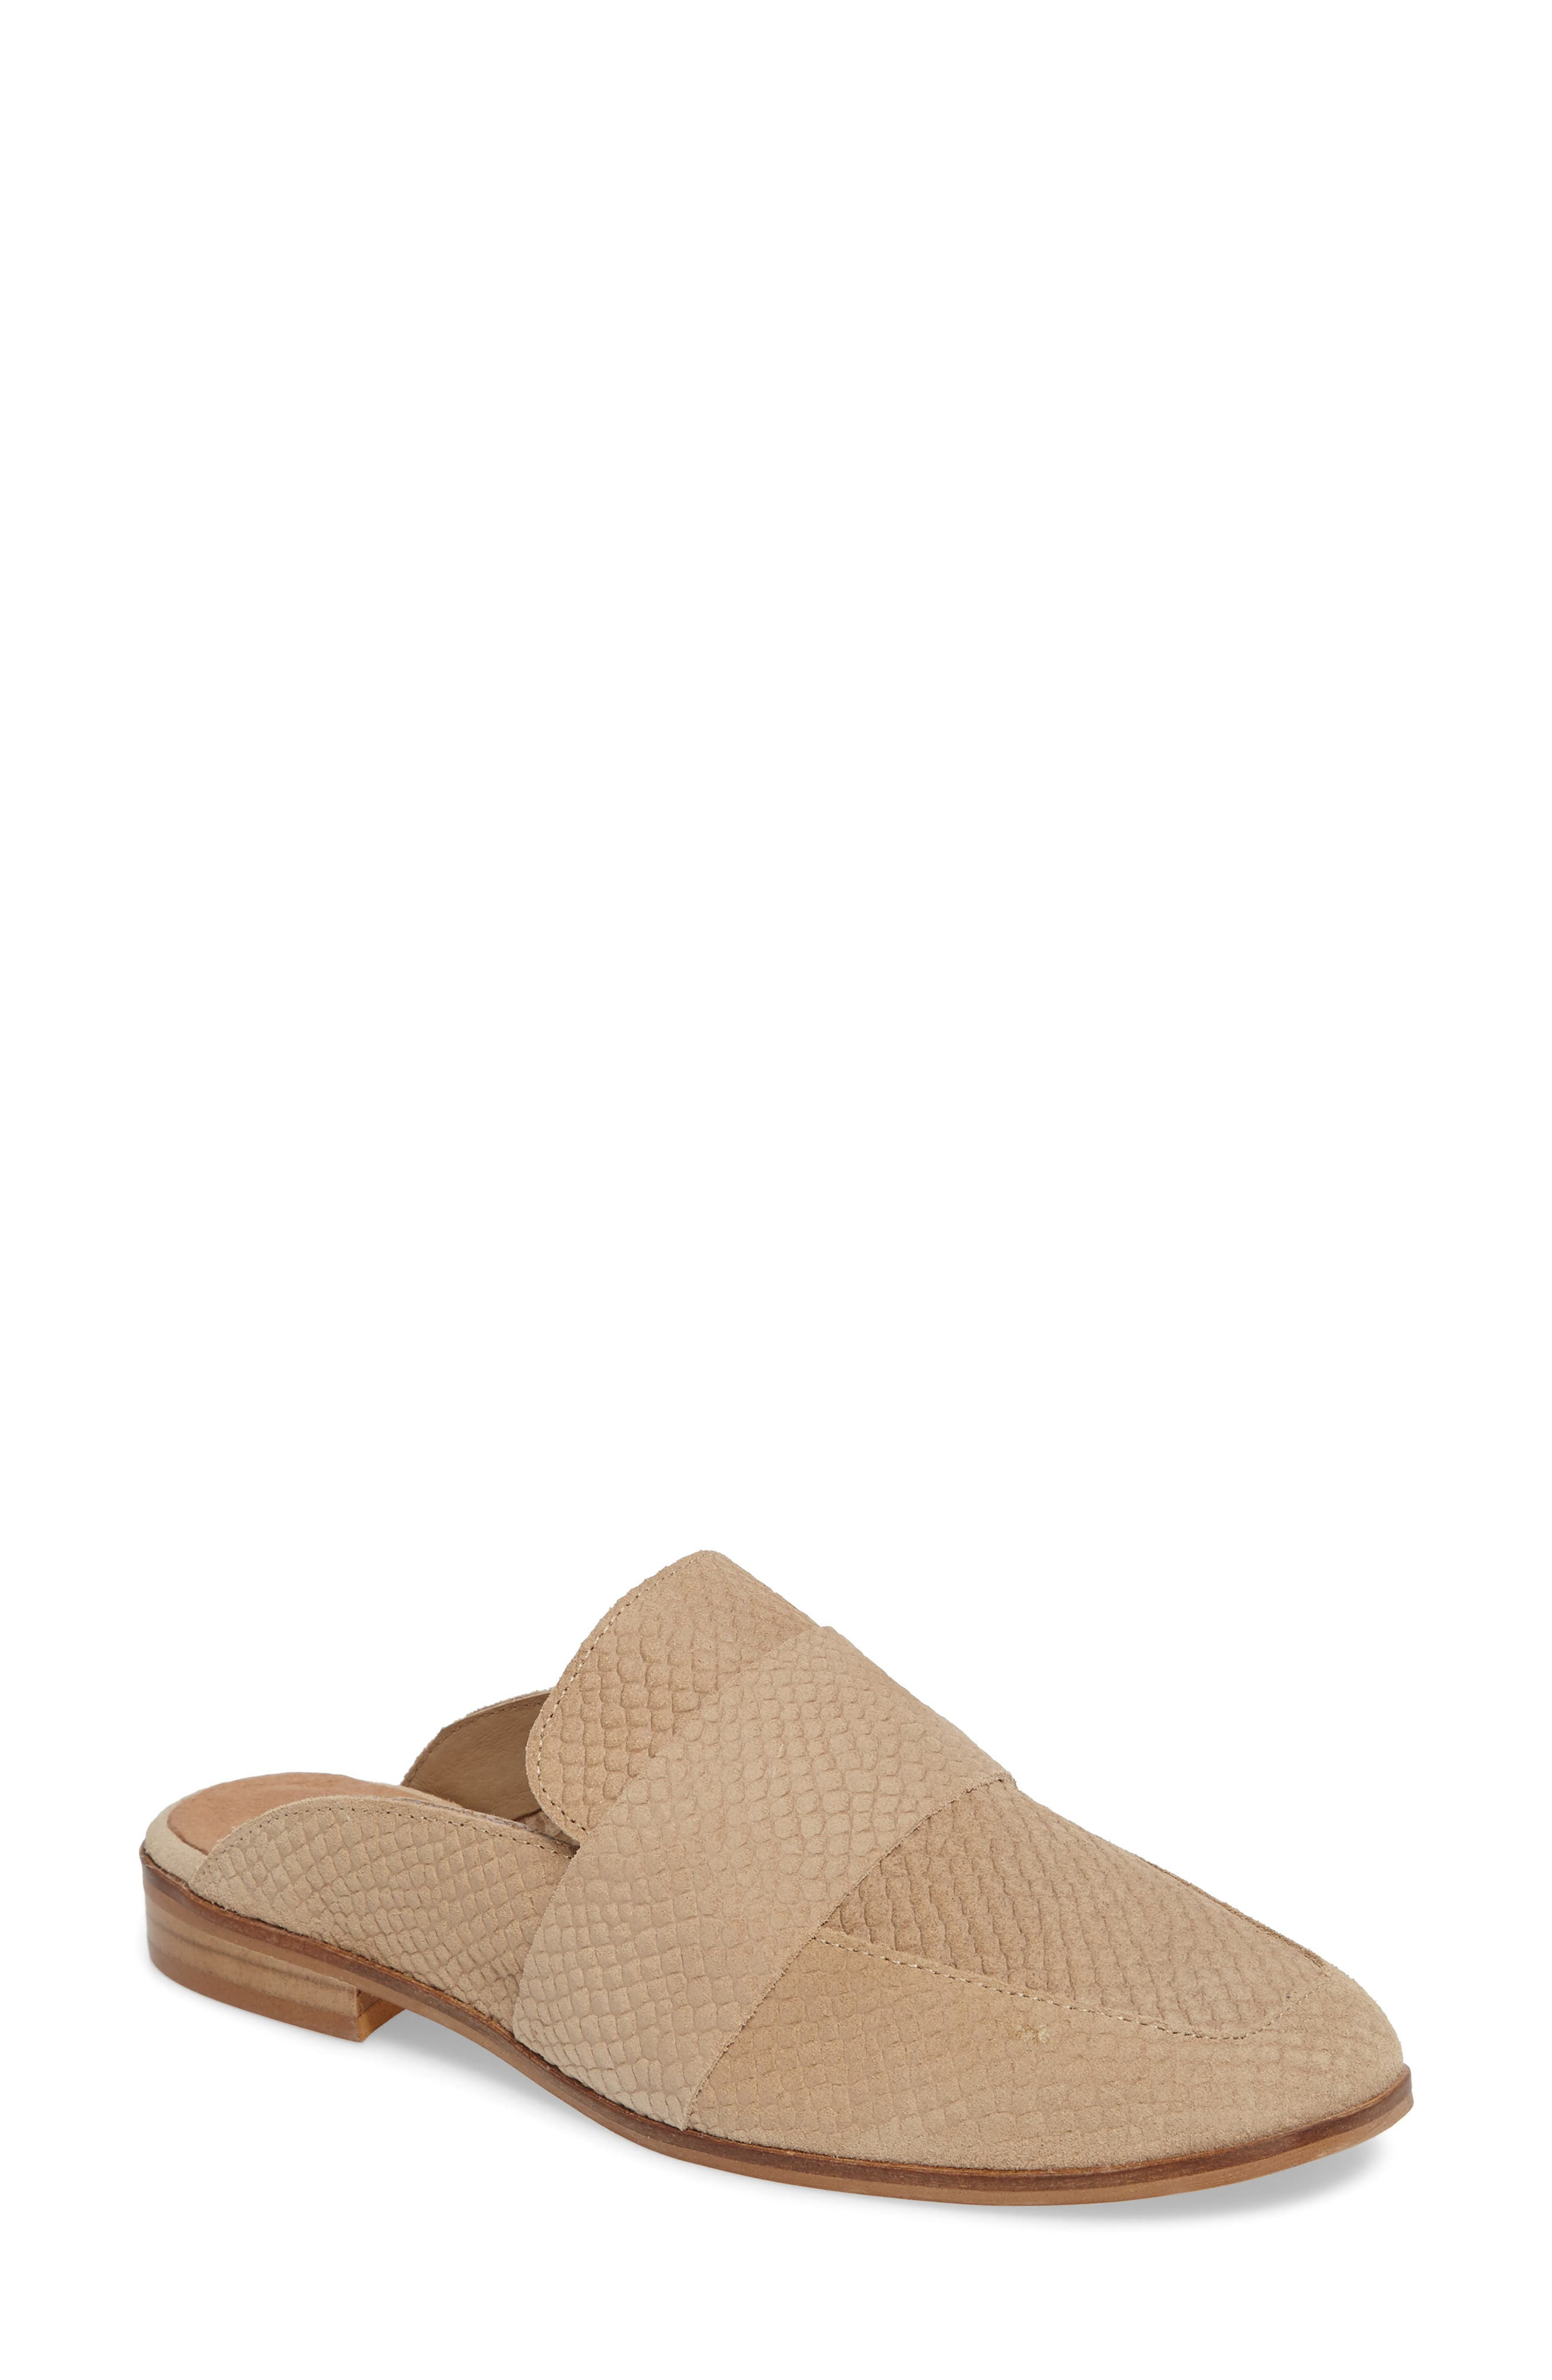 Free People At Ease Loafer Mule, Brown